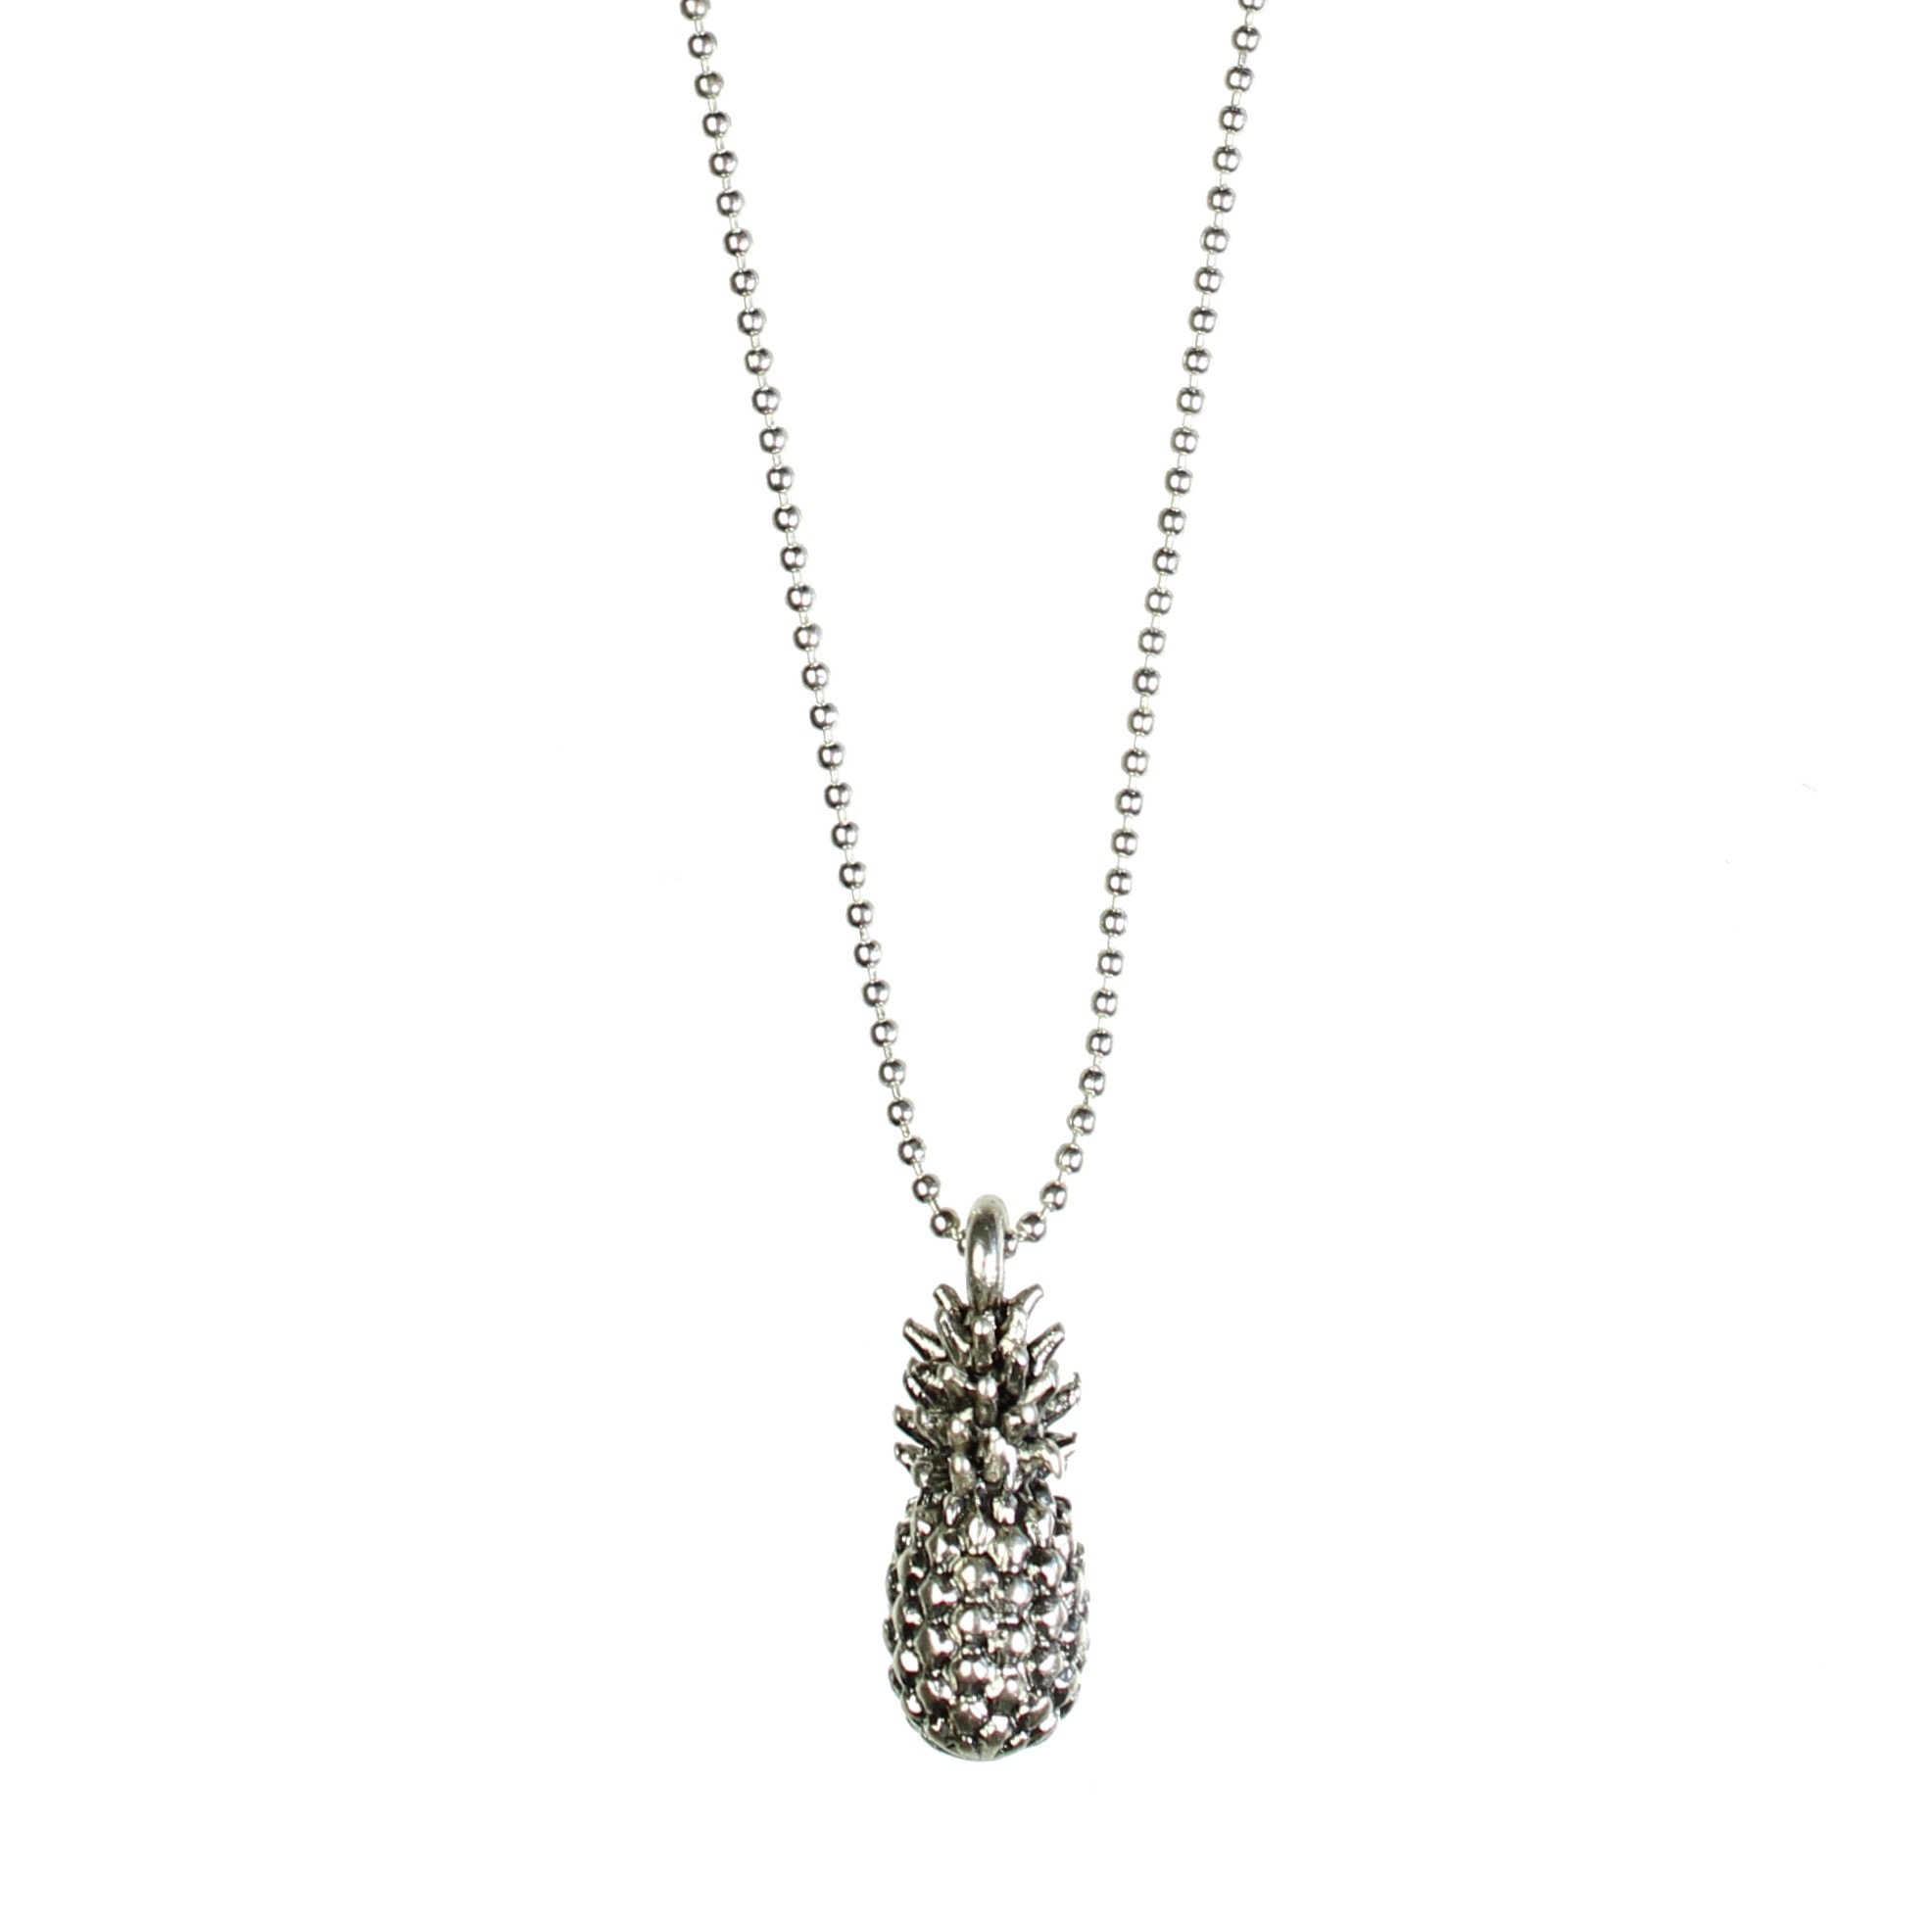 ashiana jewellery necklace pineapple london